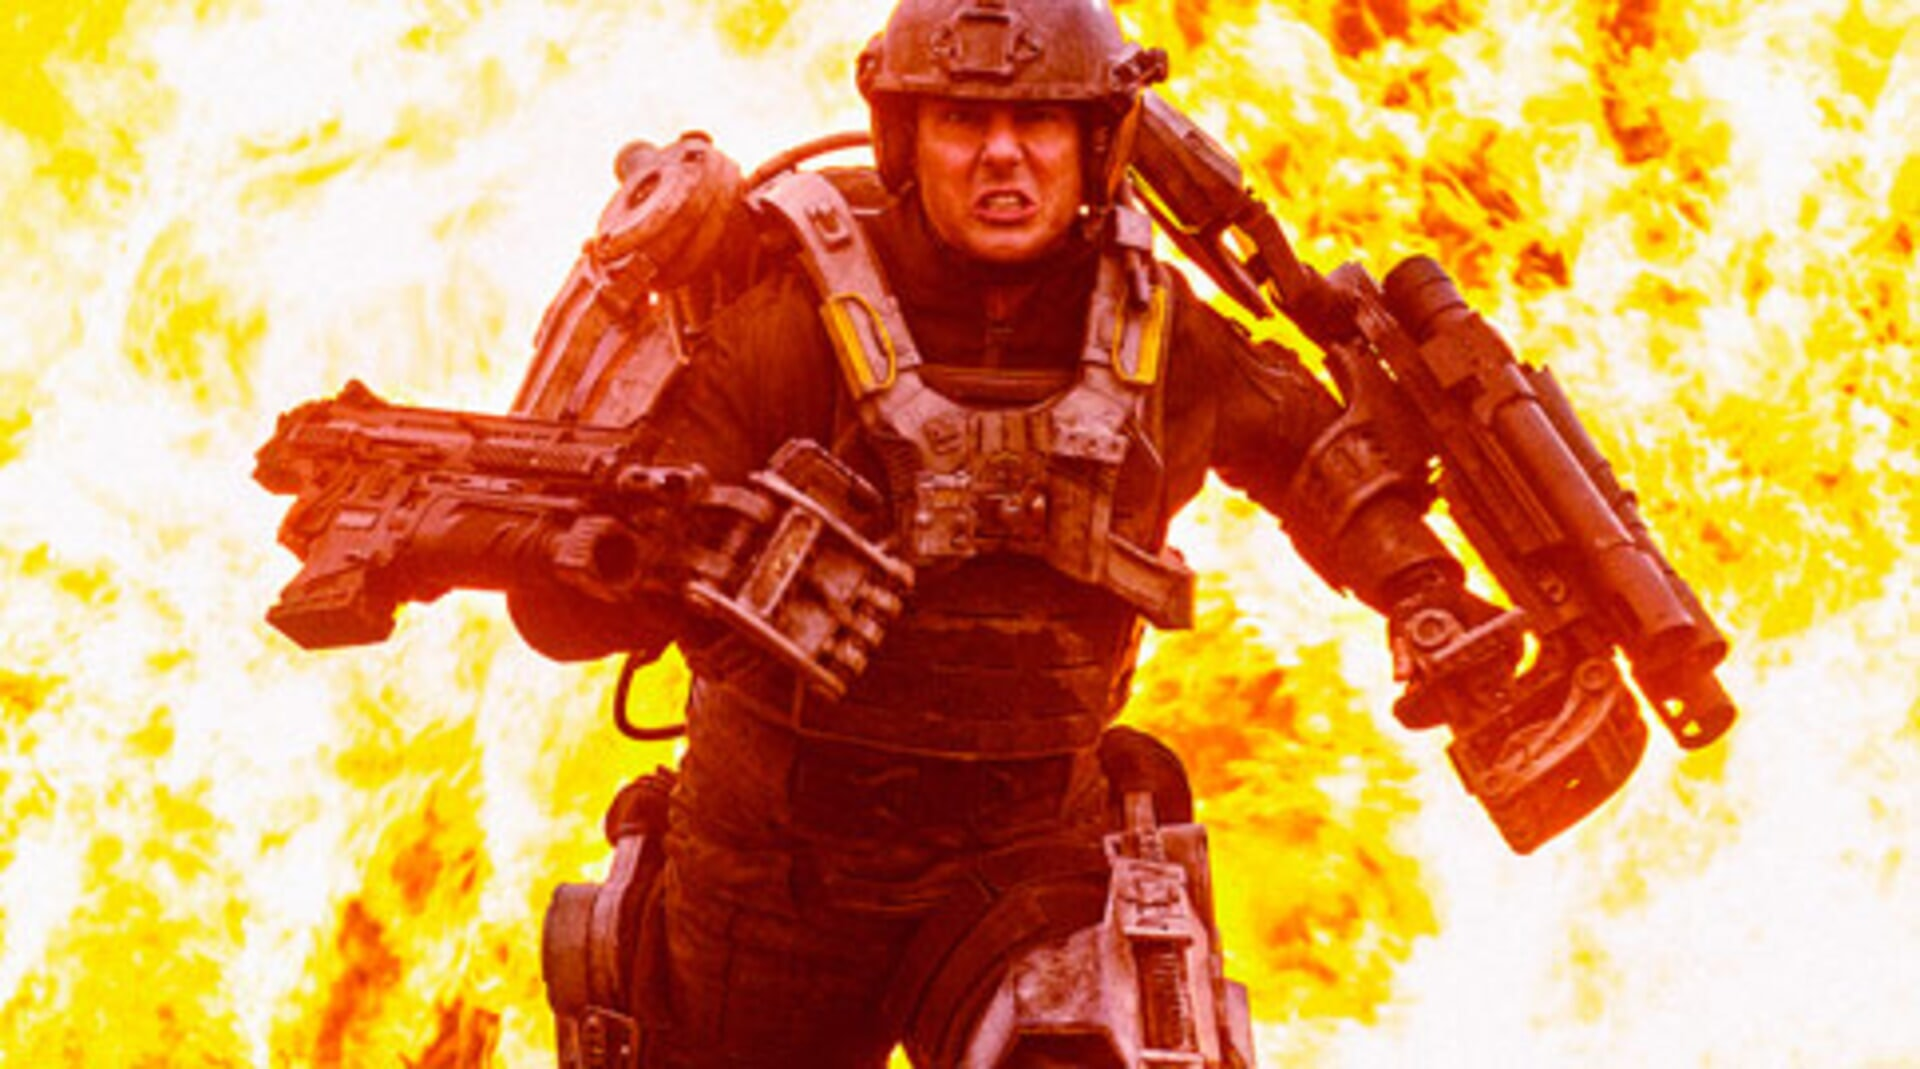 Edge of Tomorrow - Image 27